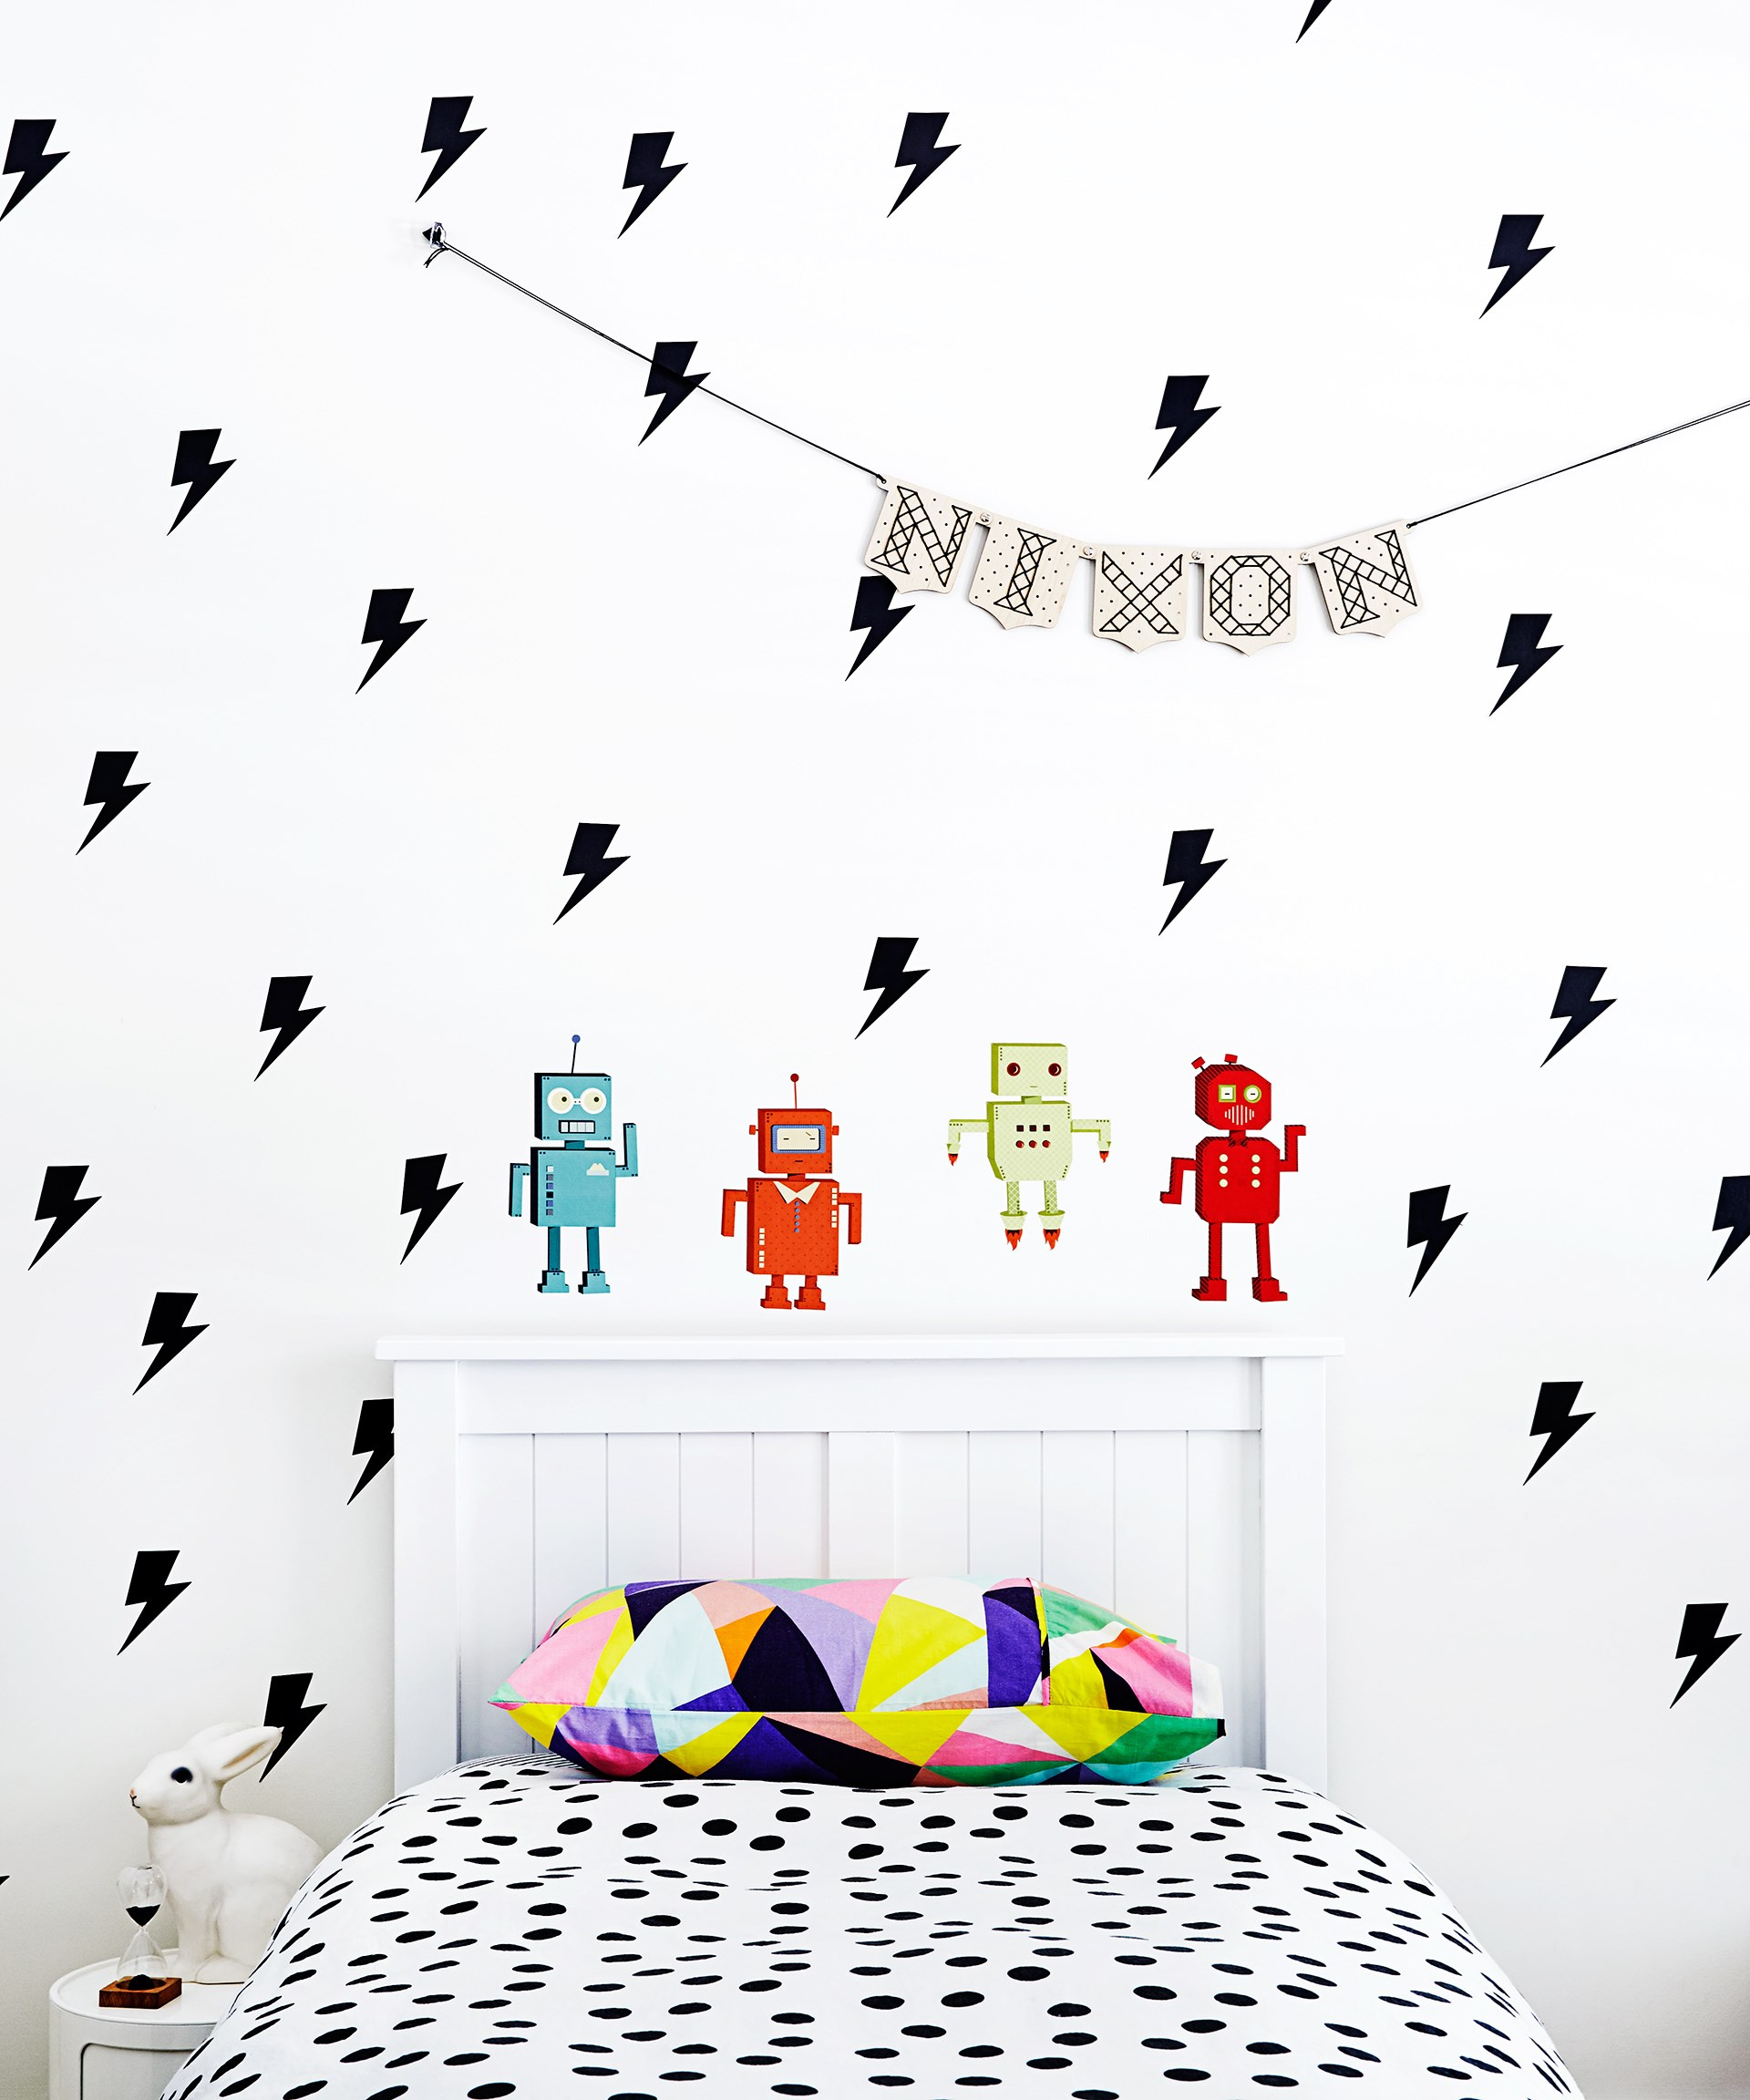 """In Nixon's bedroom, lighting bolt-stickers liven up the bedroom wall. This gives the space a strong sense of personality, as the room feels lived in, just like [the rest of the house does](http://www.homestolove.com.au/aussie-olympian-wins-gold-on-home-reno-2959